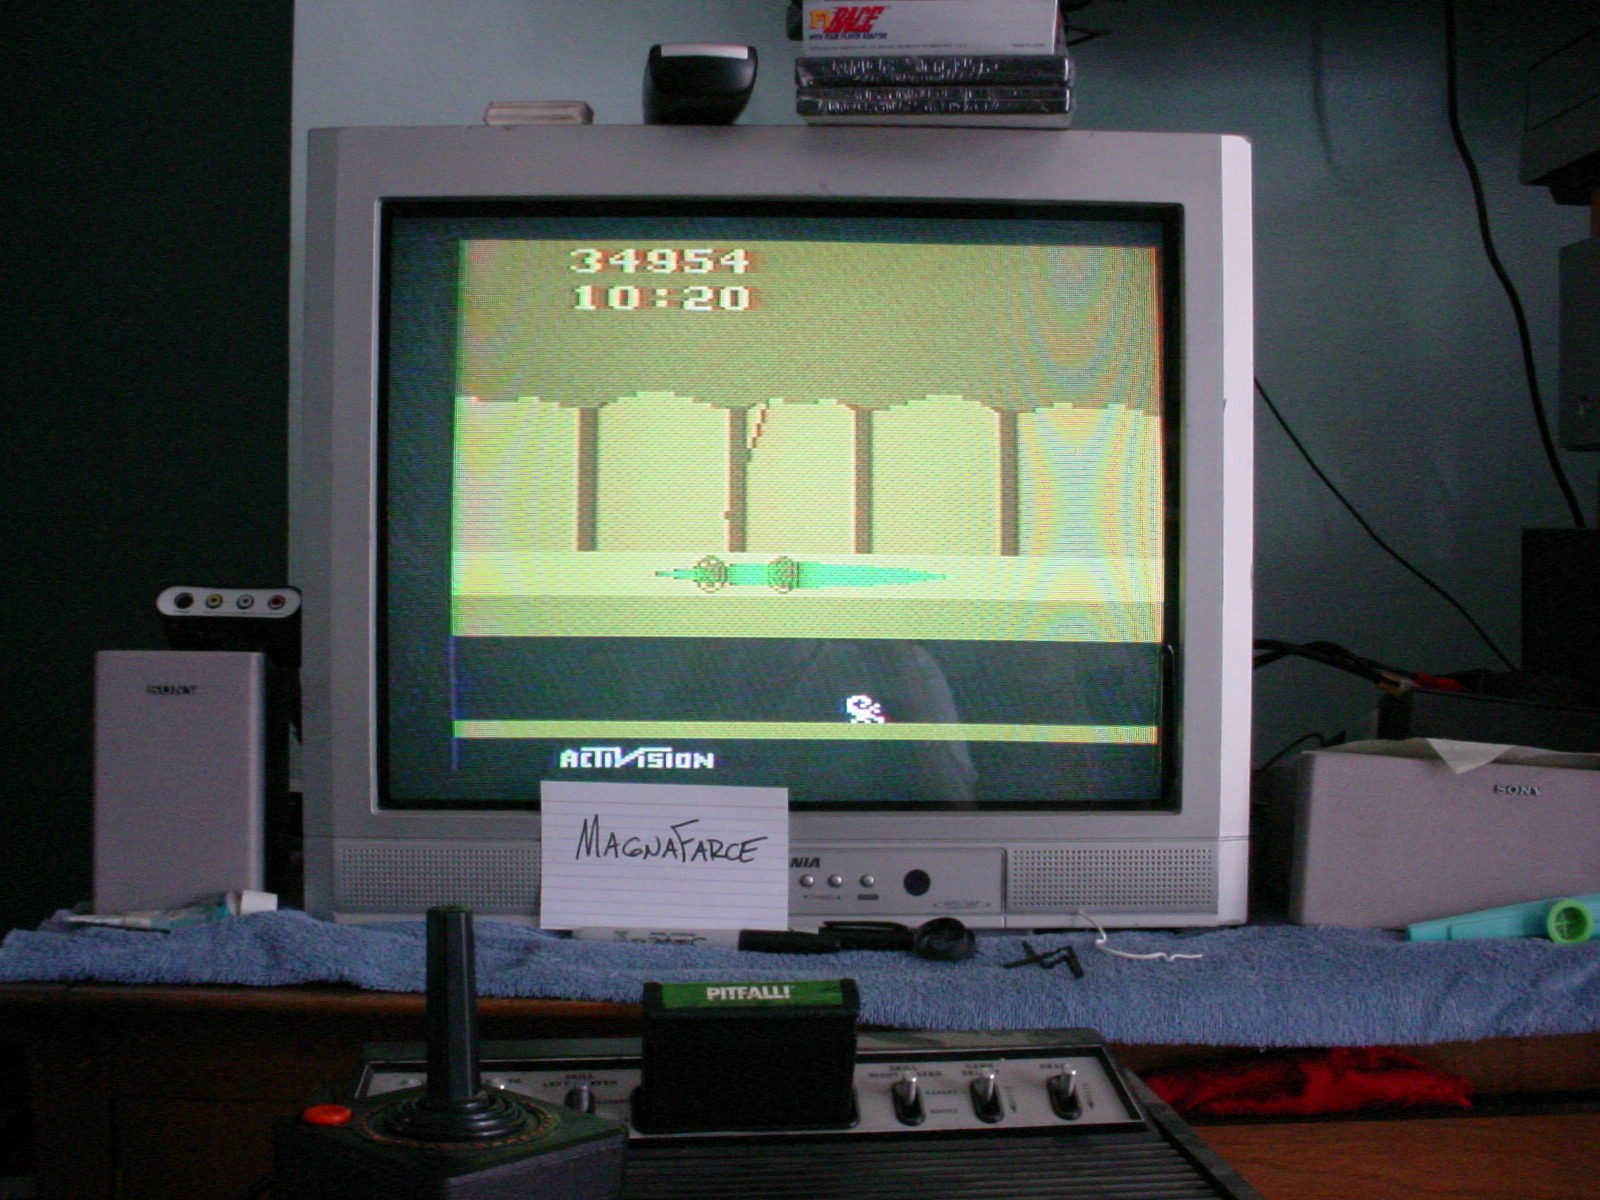 MagnaFarce: Pitfall! (Atari 2600 Expert/A) 34,954 points on 2014-01-01 16:12:21